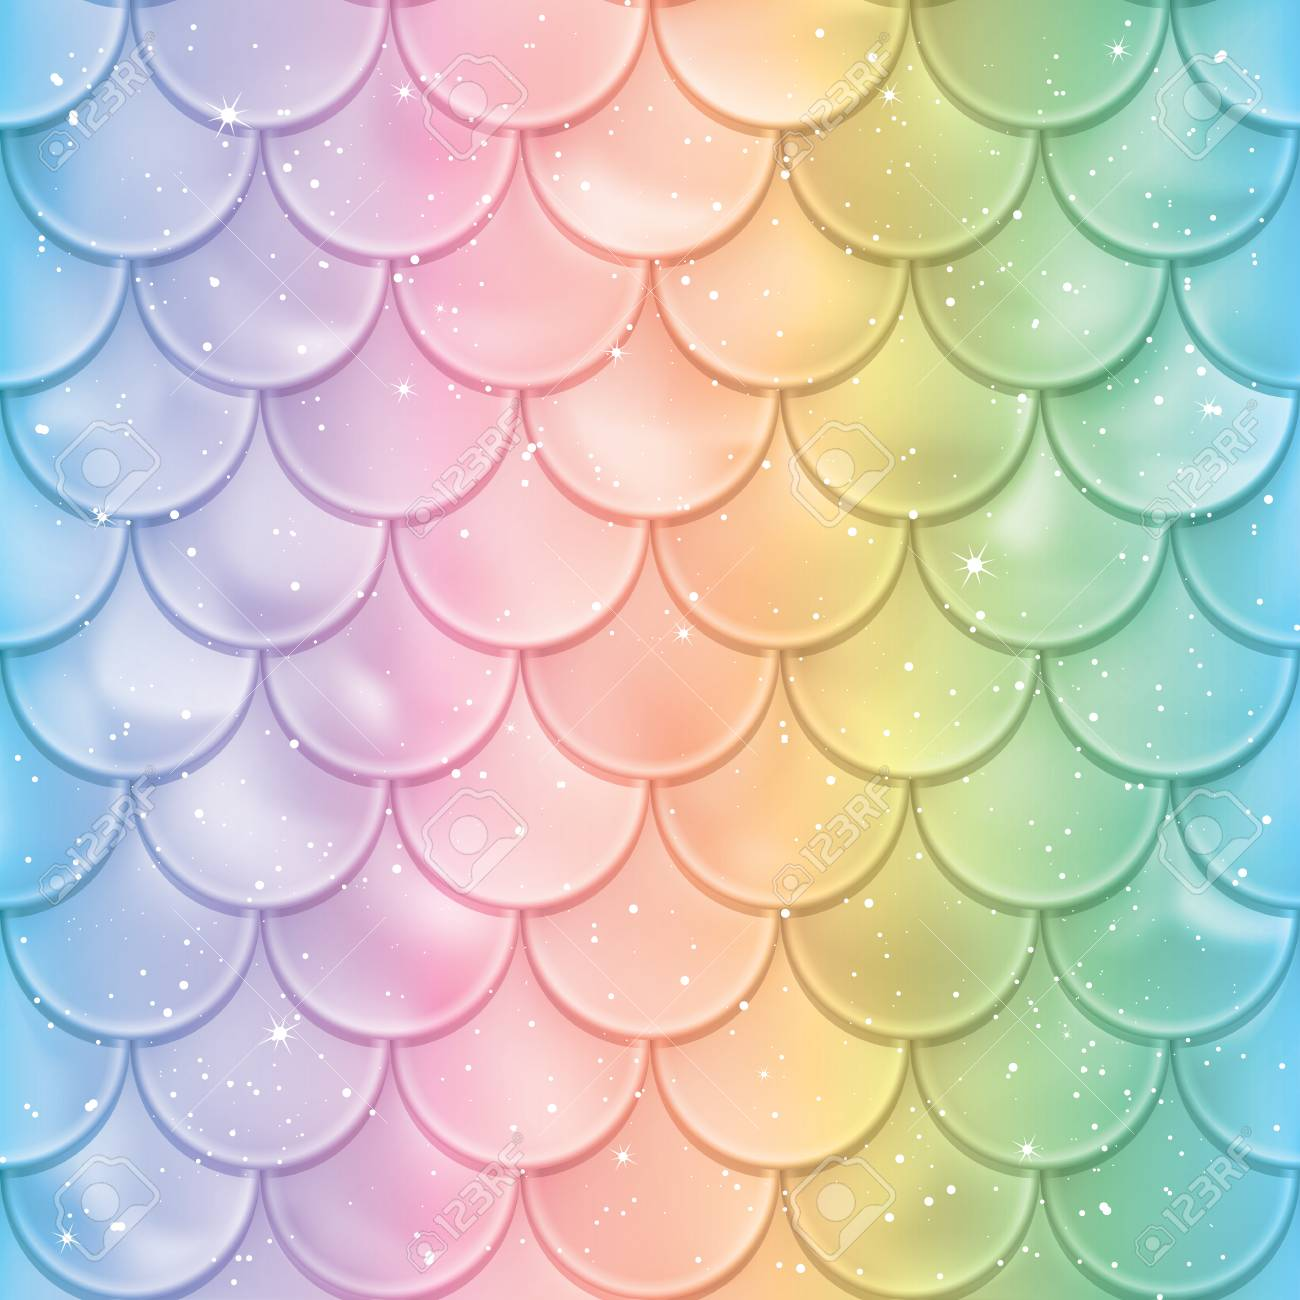 Fish Scales Seamless Pattern Mermaid Tail Texture In Spectrum Colors Vector Illustration Print